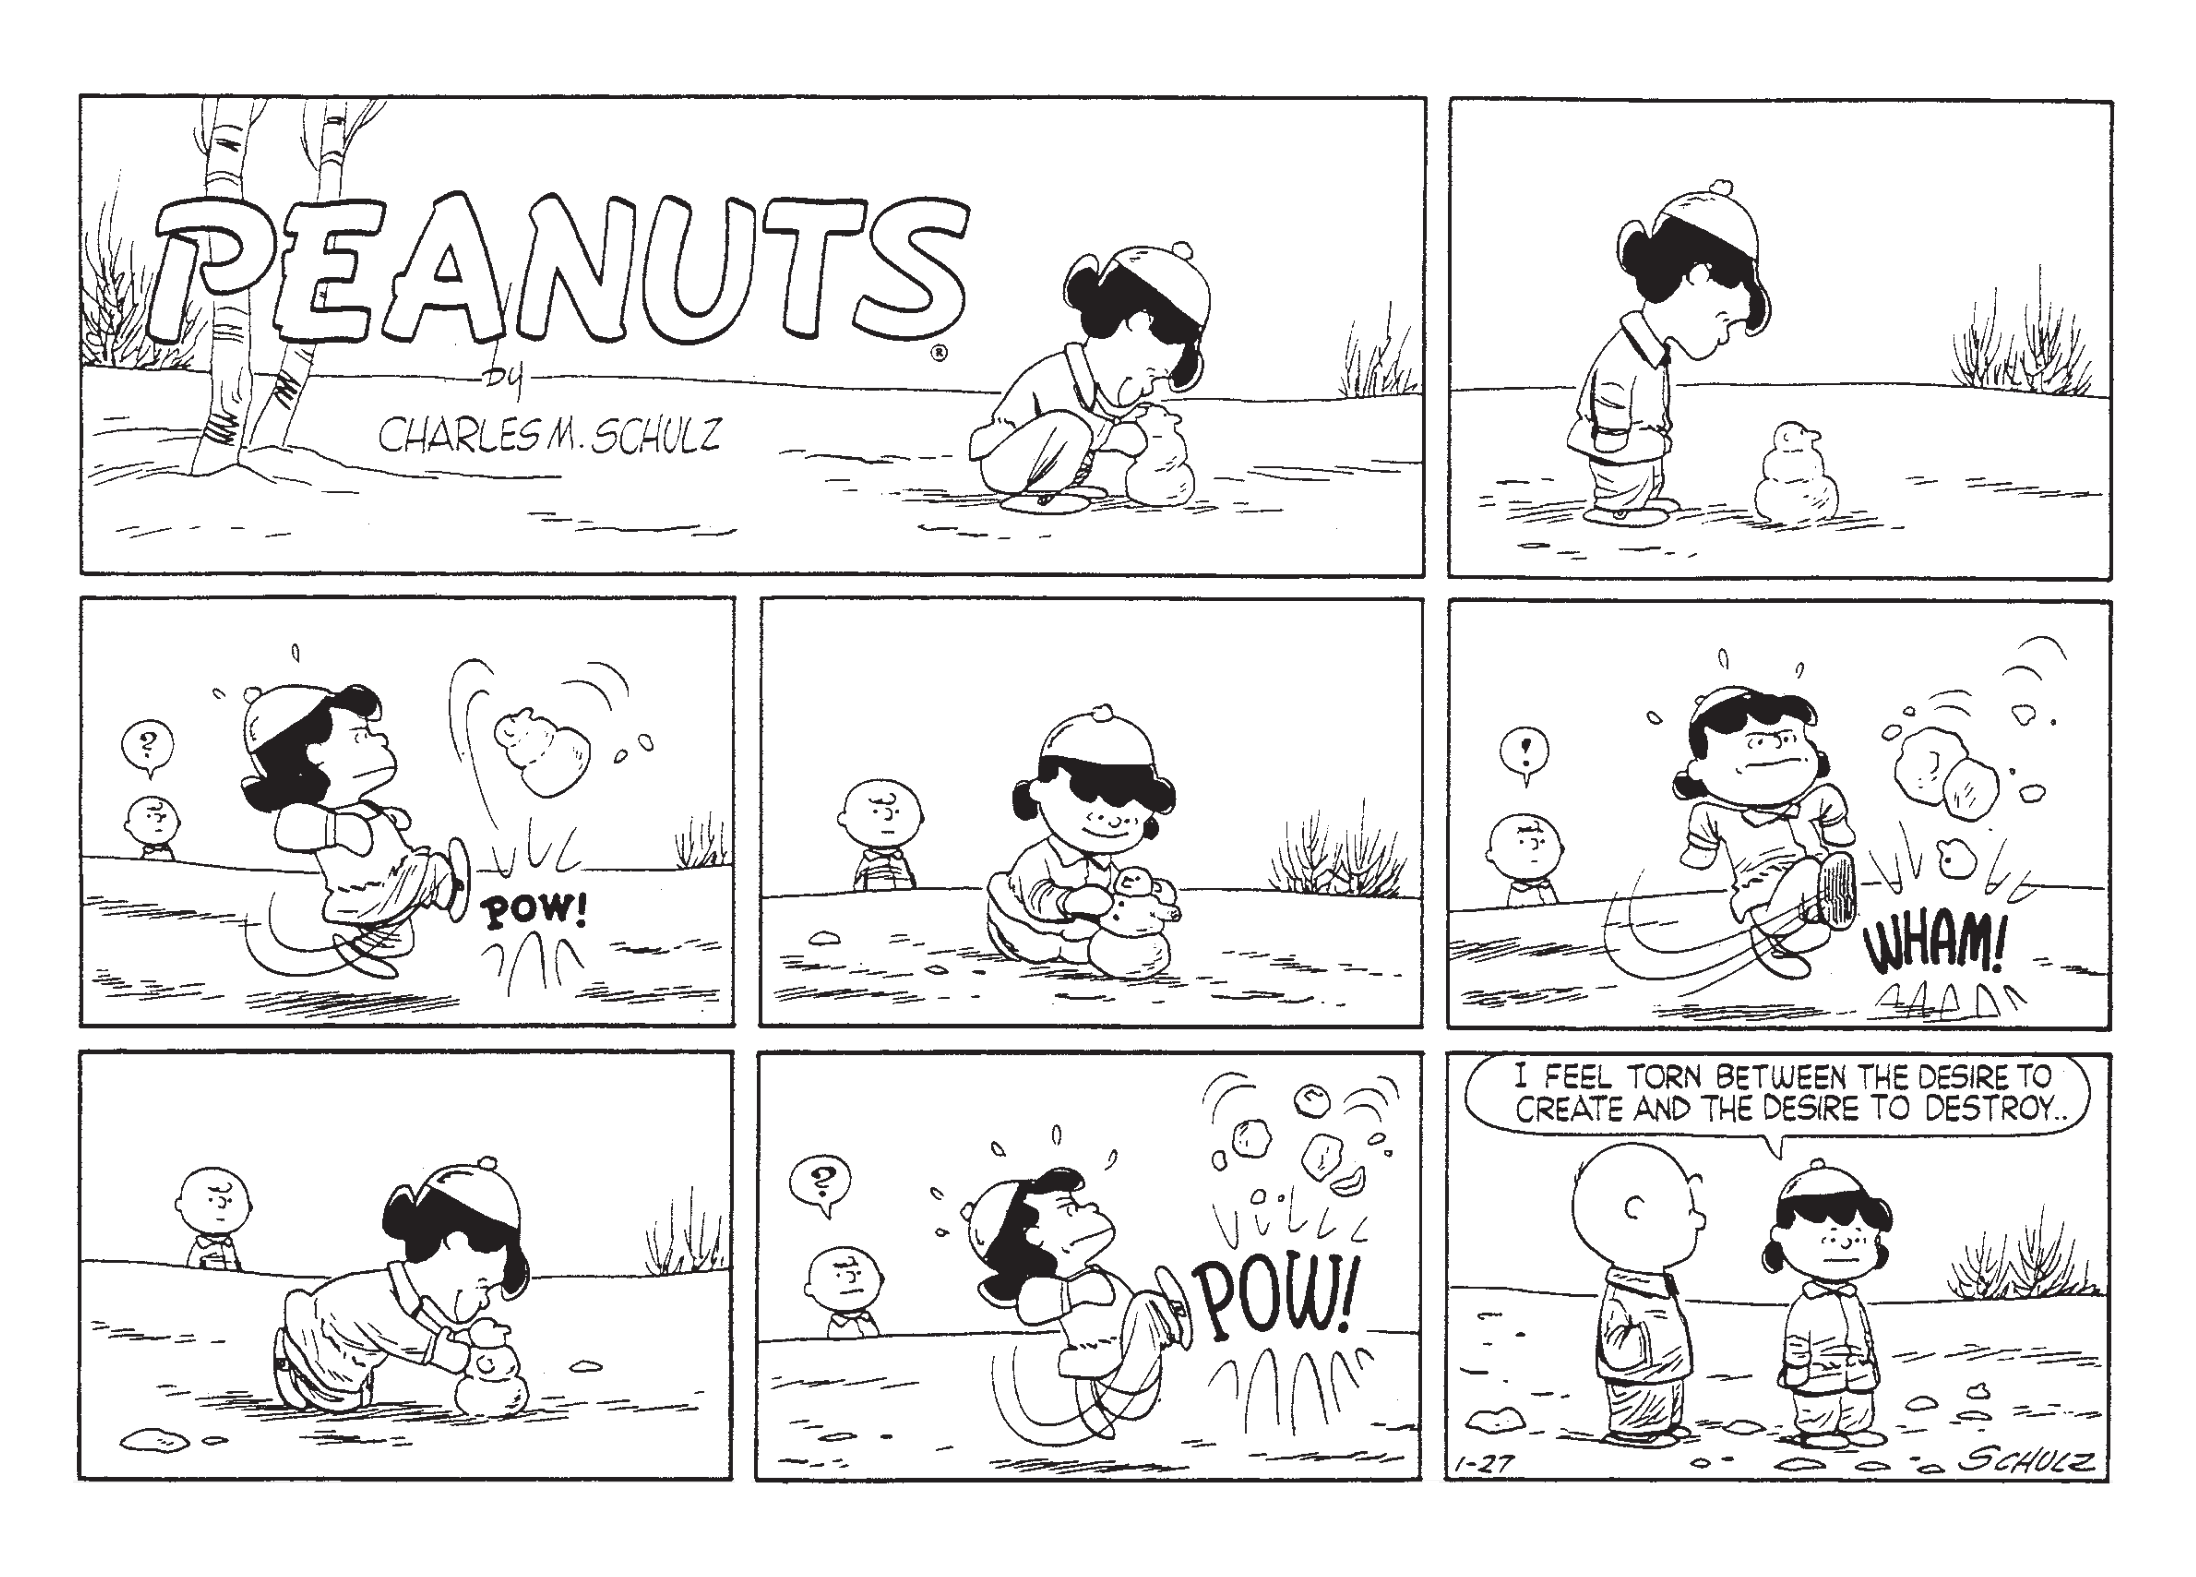 Complete Peanuts 1955 review